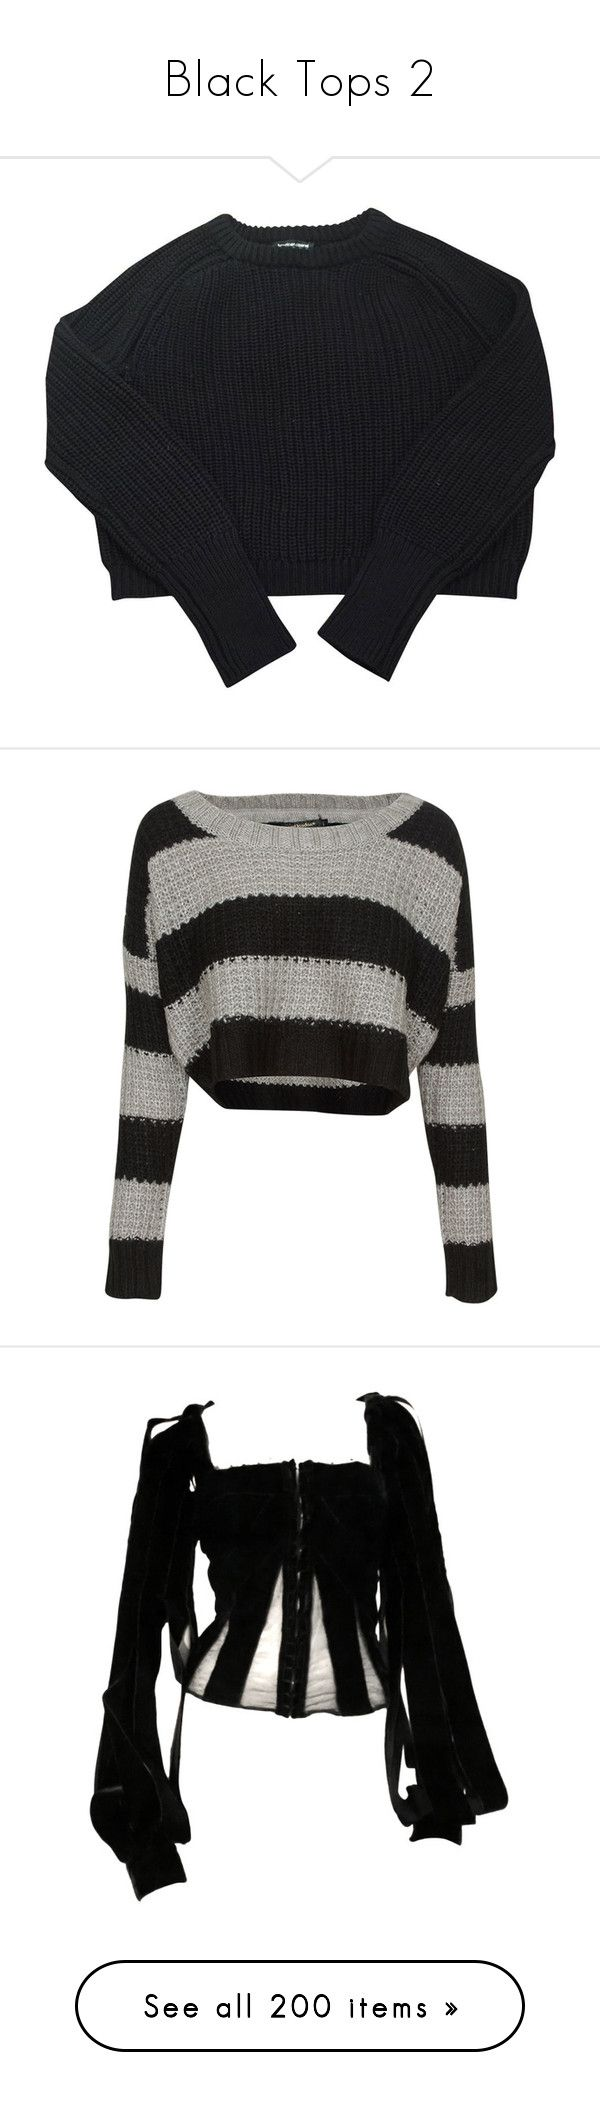 """""""Black Tops 2"""" by another-emily ❤ liked on Polyvore featuring tops, sweaters, clothes - tops, clothing - ls tops, american apparel sweater, american apparel tops, american apparel, knitwear sweater, cotton sweaters and shirts"""